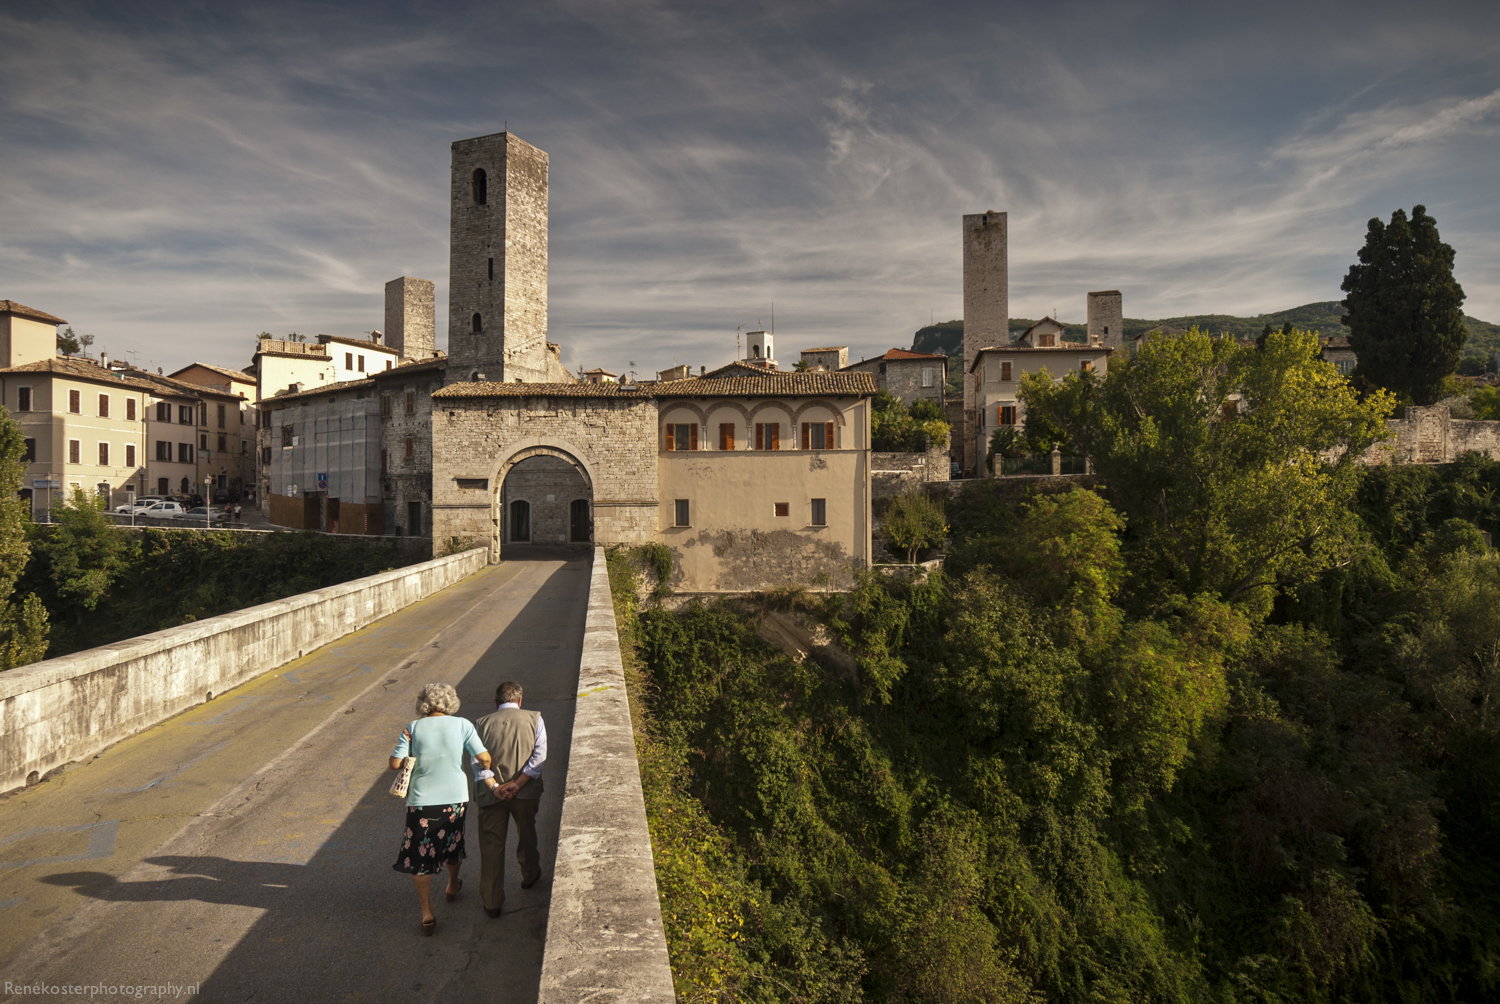 ITALY-MARCHE 05.JPG